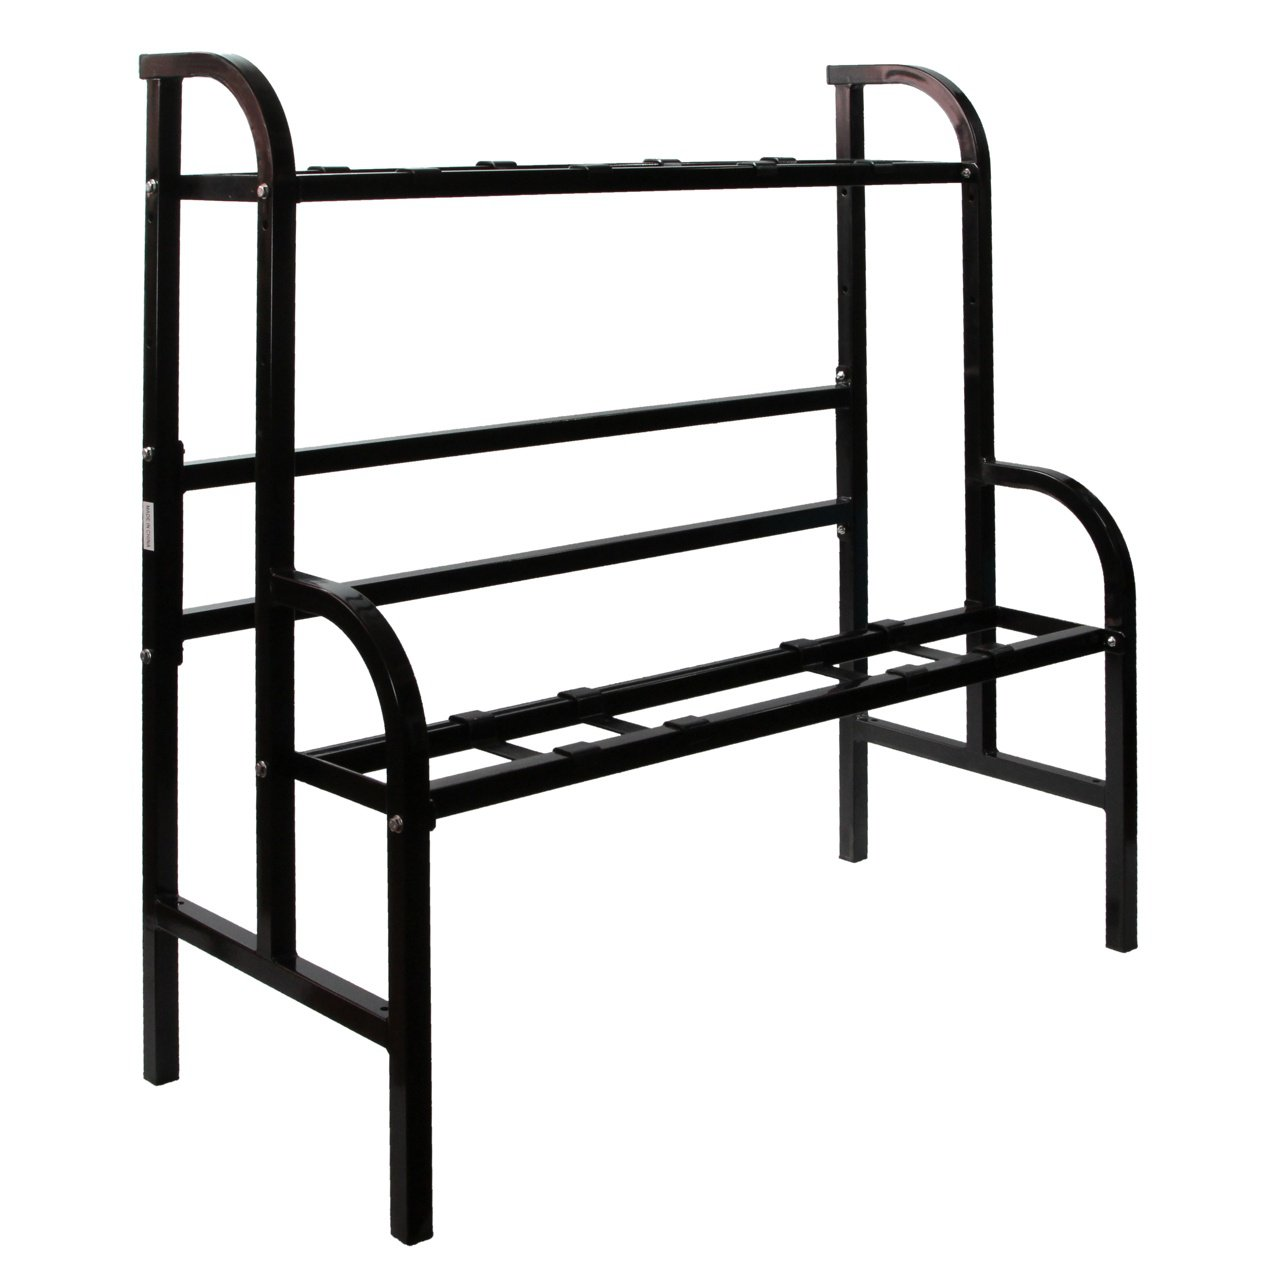 Steel 8 Unit Step Stand